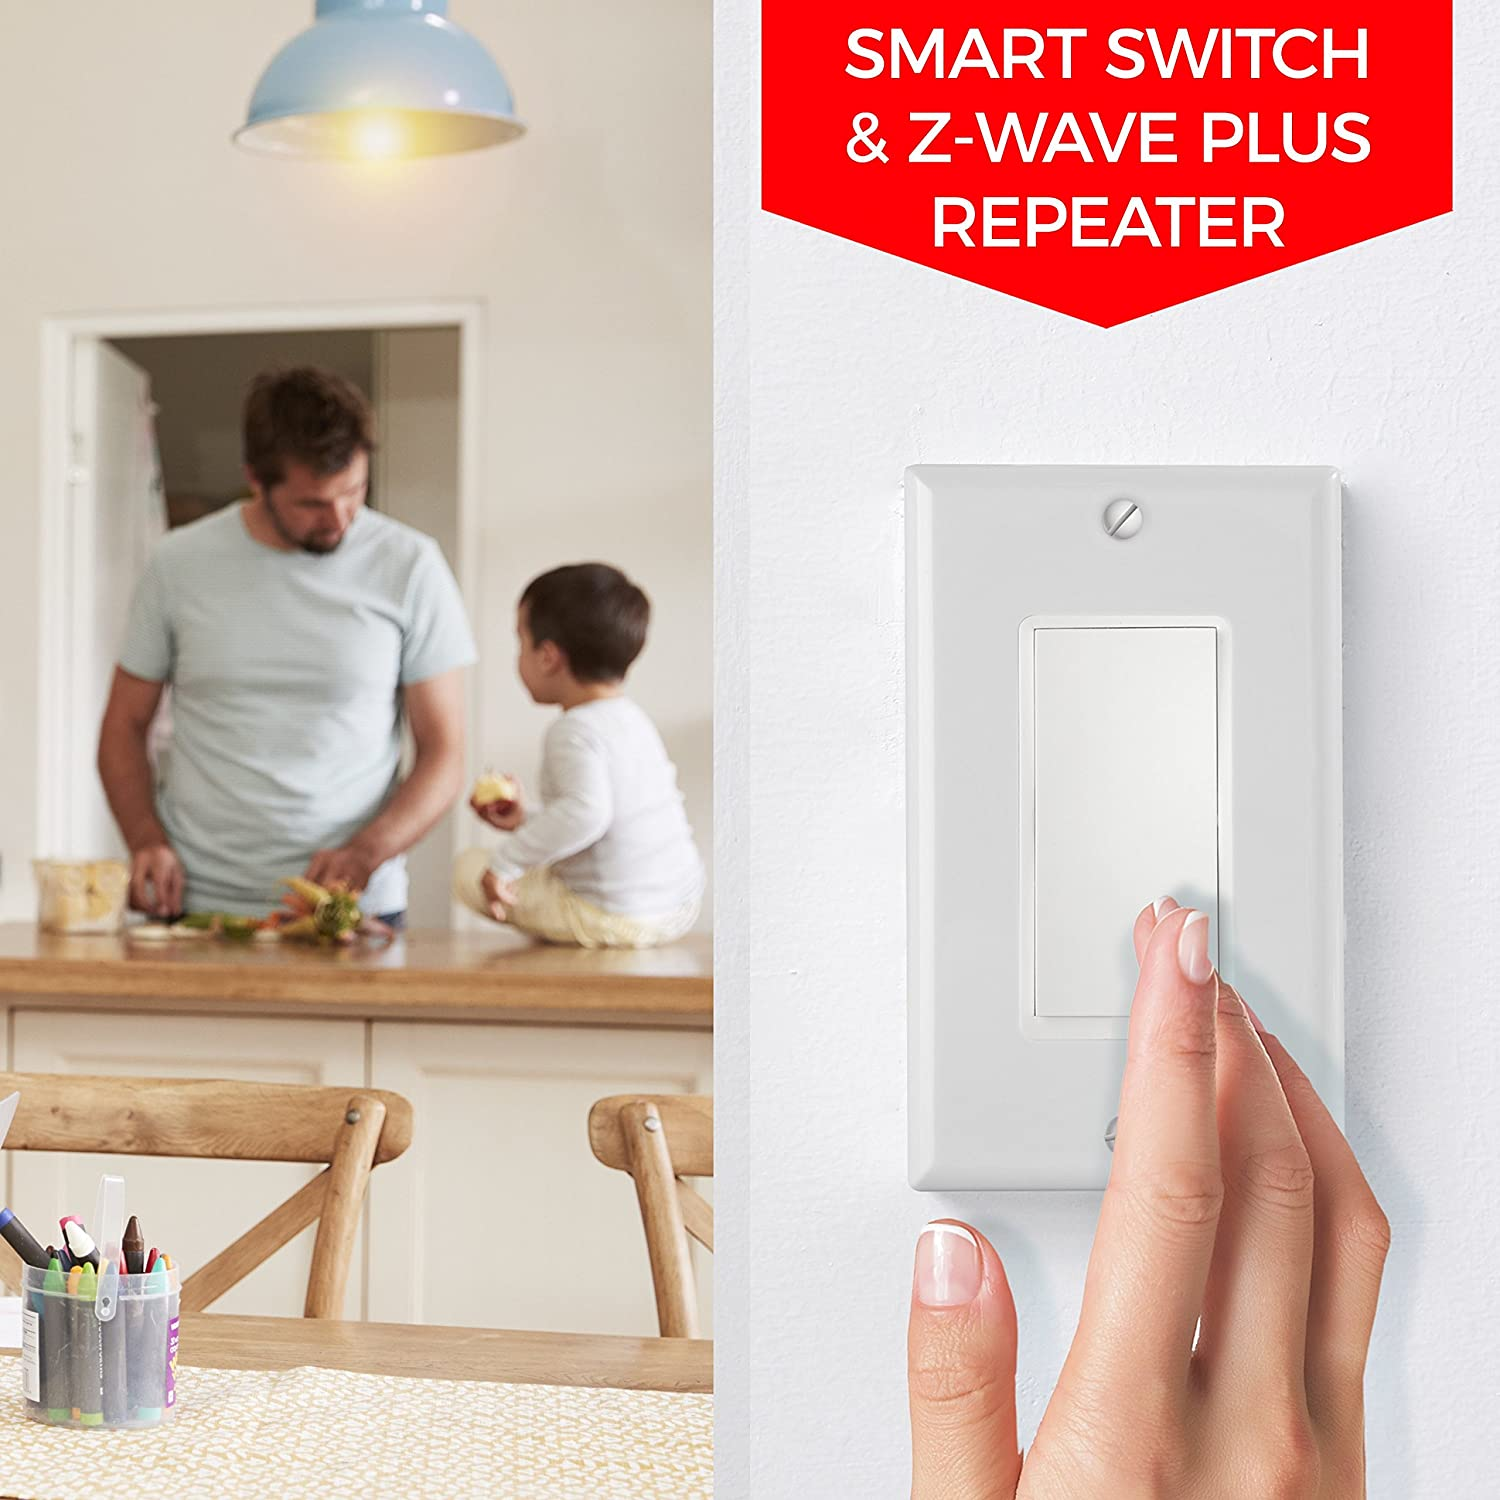 Z Wave Switch On Off Built In Repeater Zwave Plus Tutorial 3way Switches And 4way Wall Light Paddle Works With Samsung Smartthings Wink Hub Easy 3 4 Way